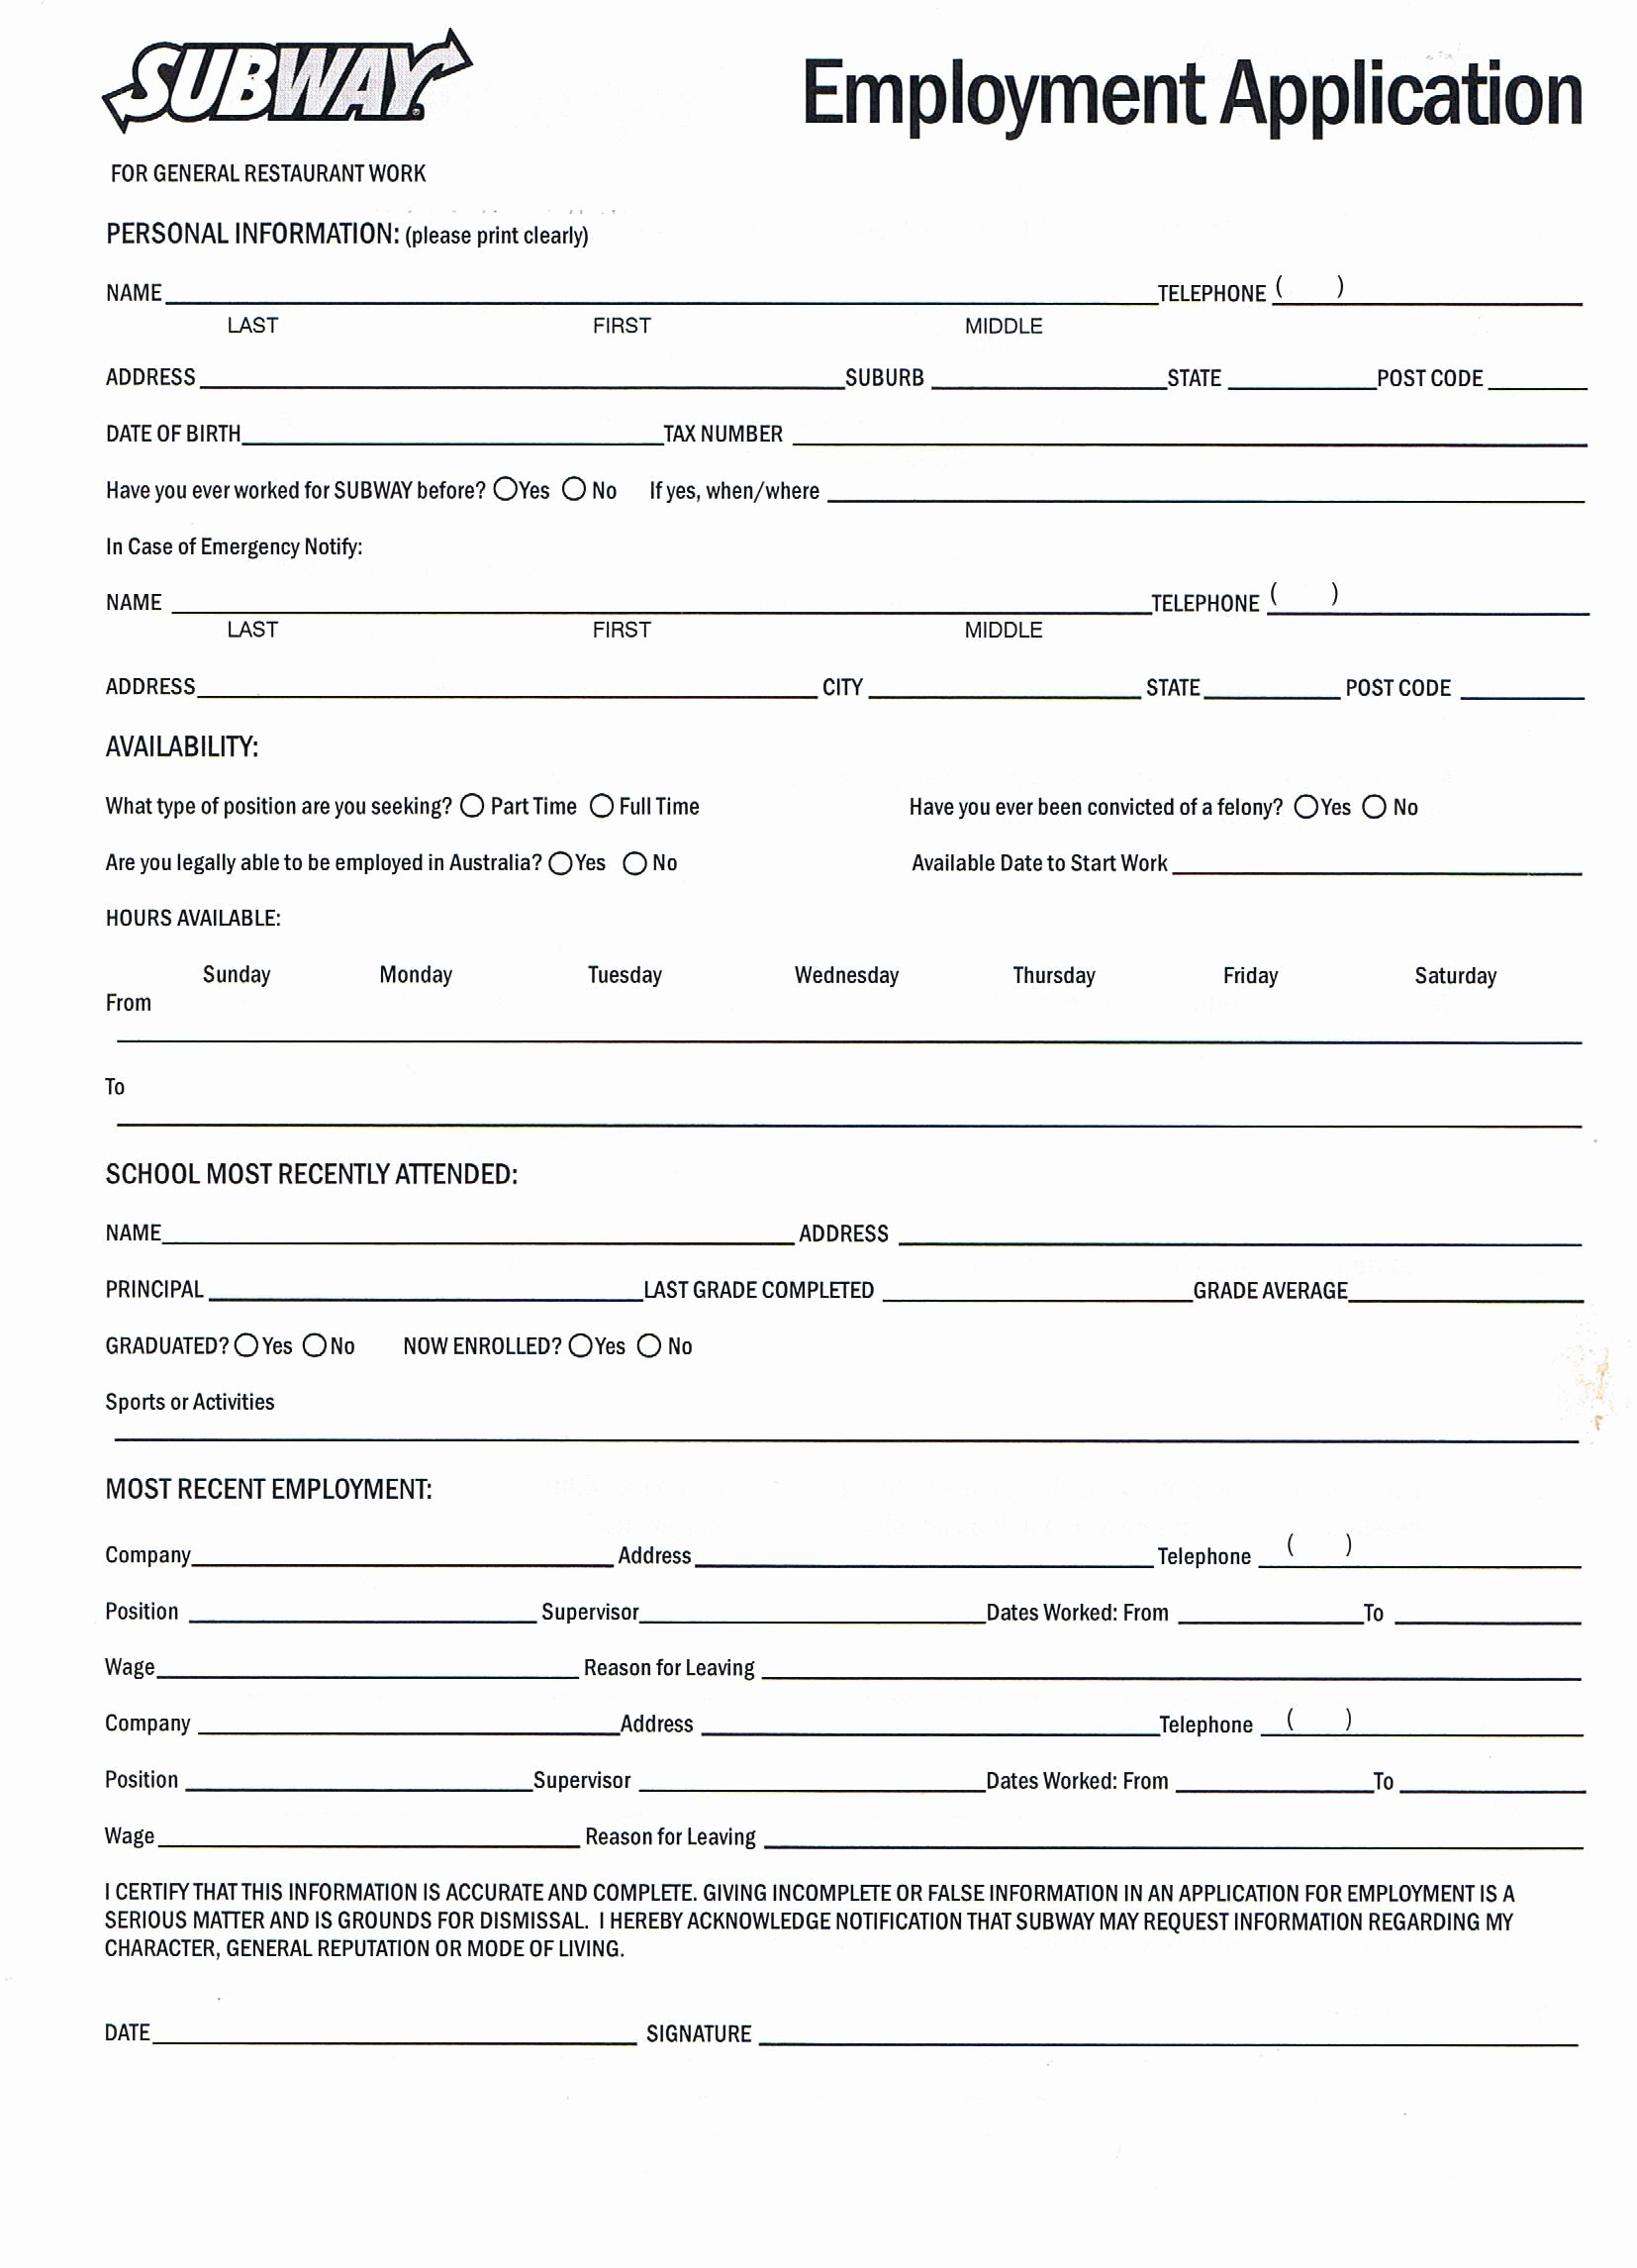 Free Employment Application to Print Inspirational Printable Employment Application for Subway